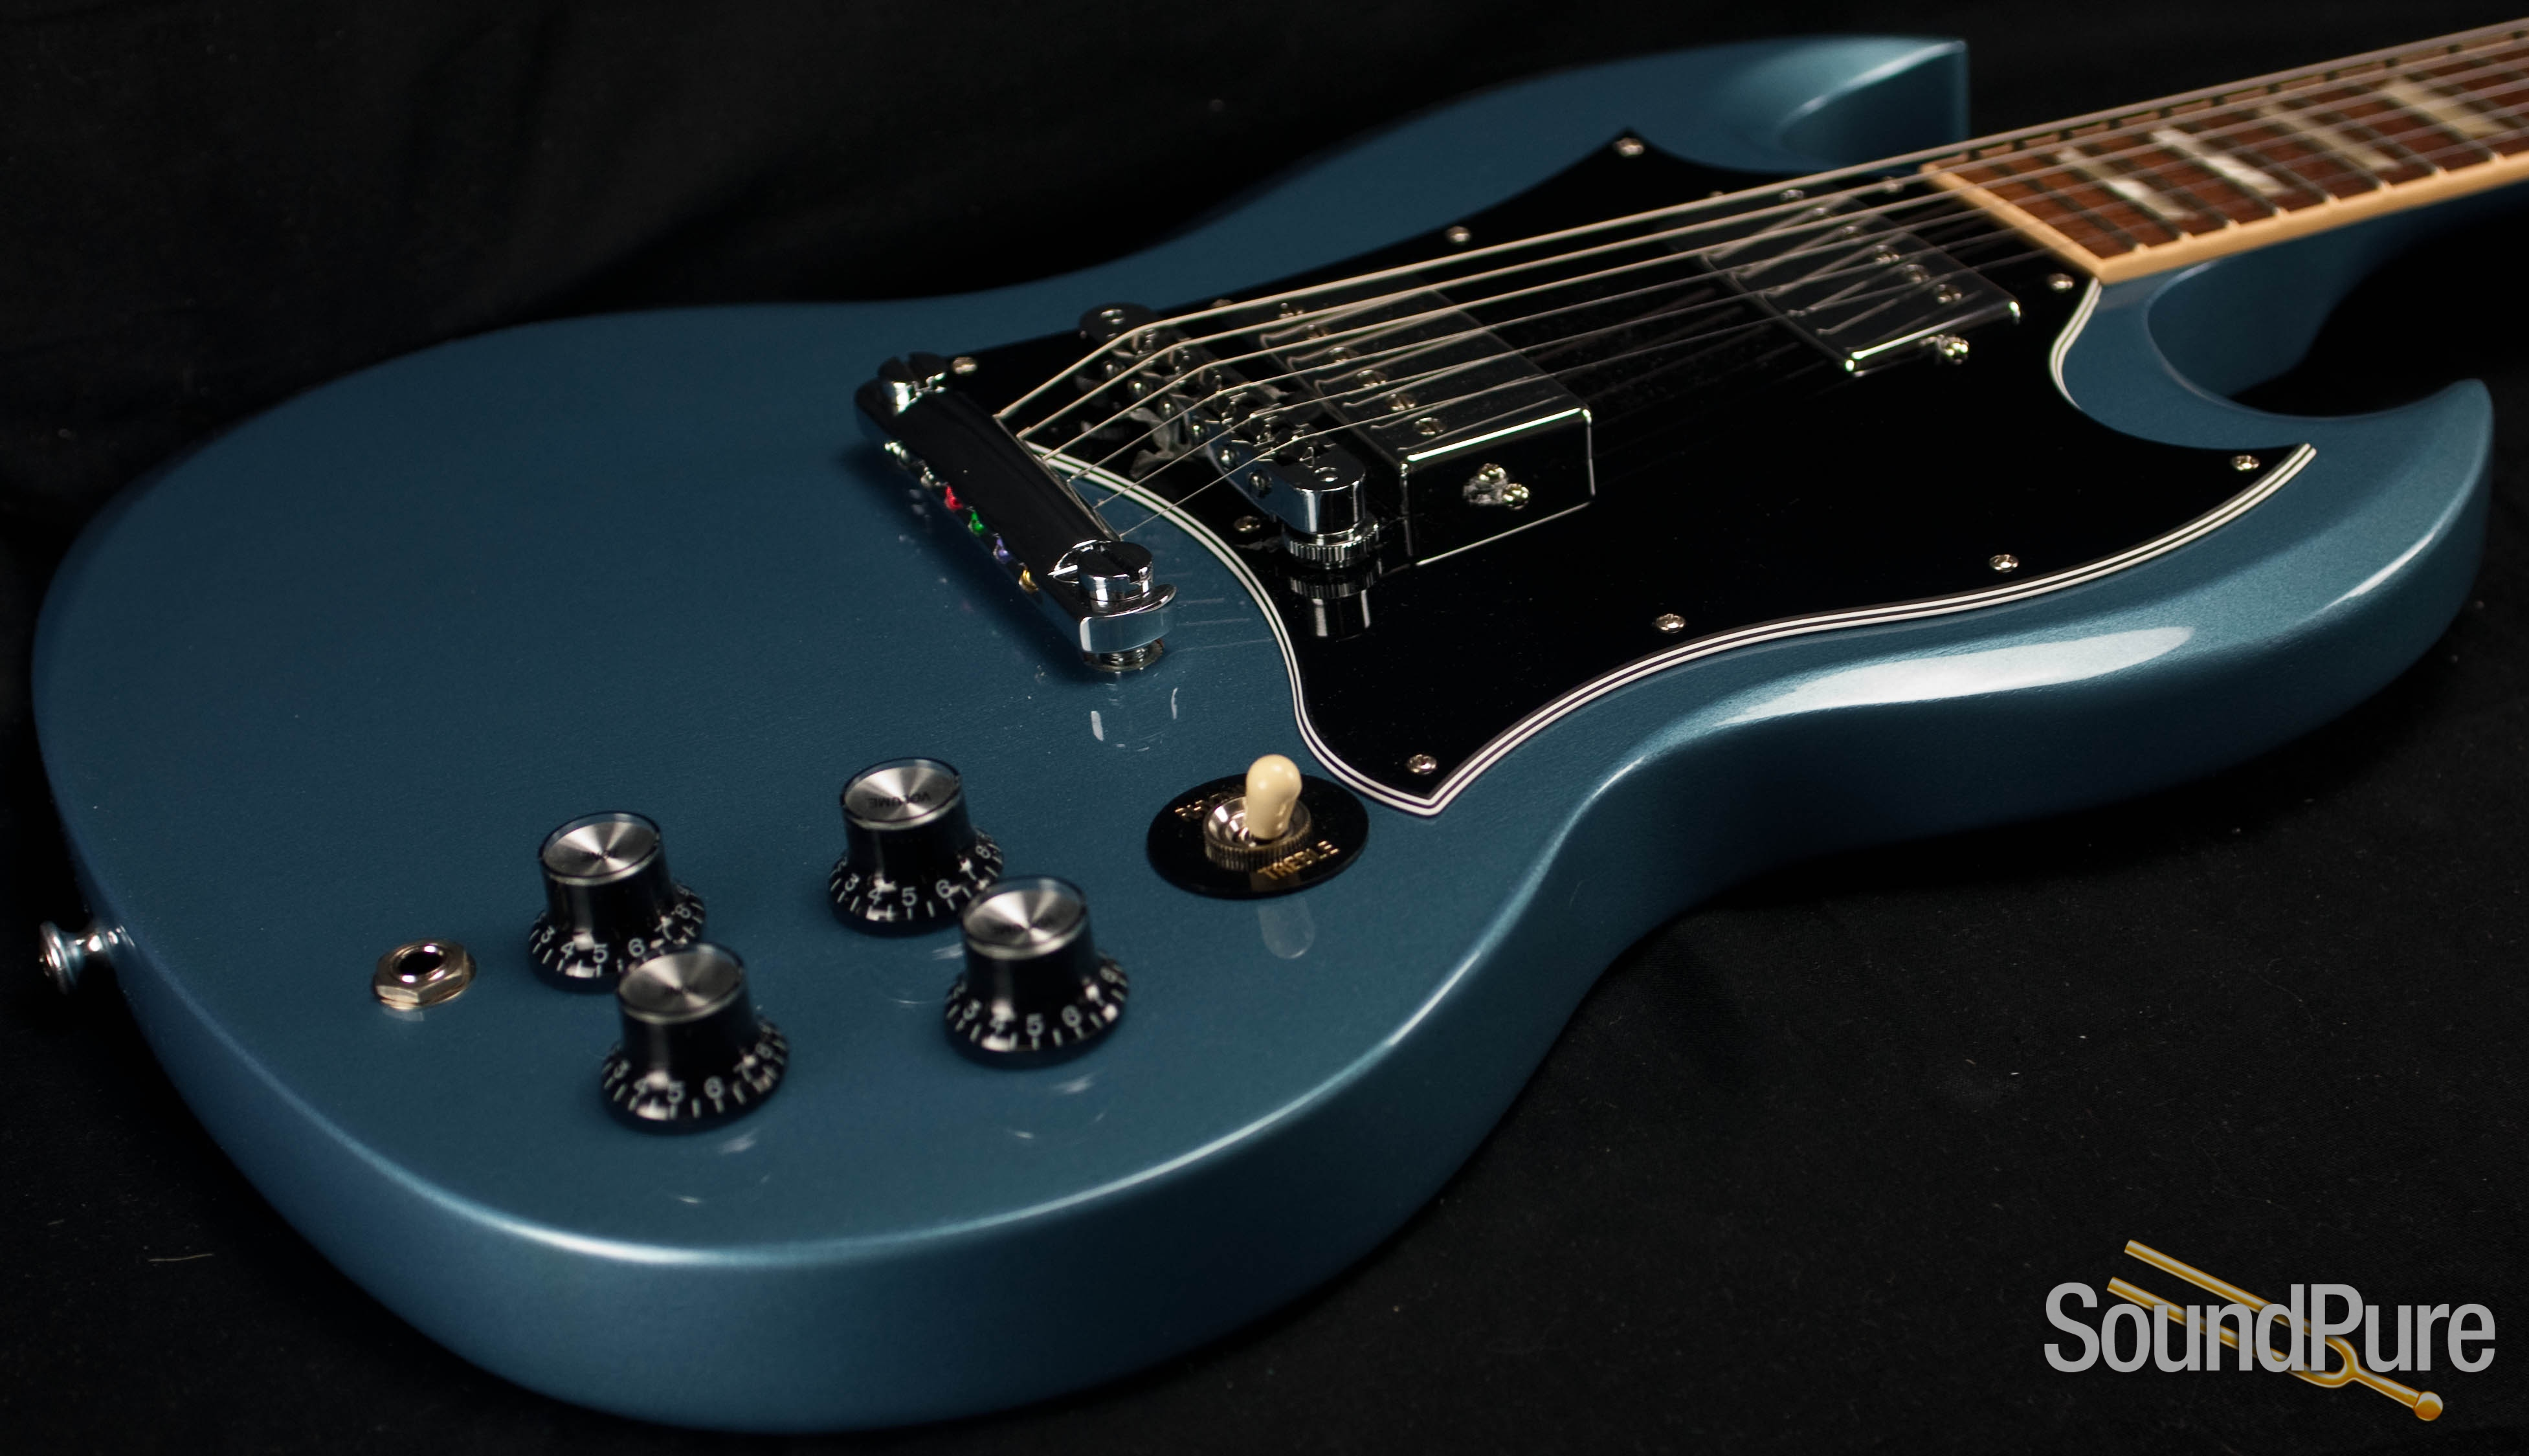 Gibson SG Standard Limited Edition Pelham Blue Guitar - Used